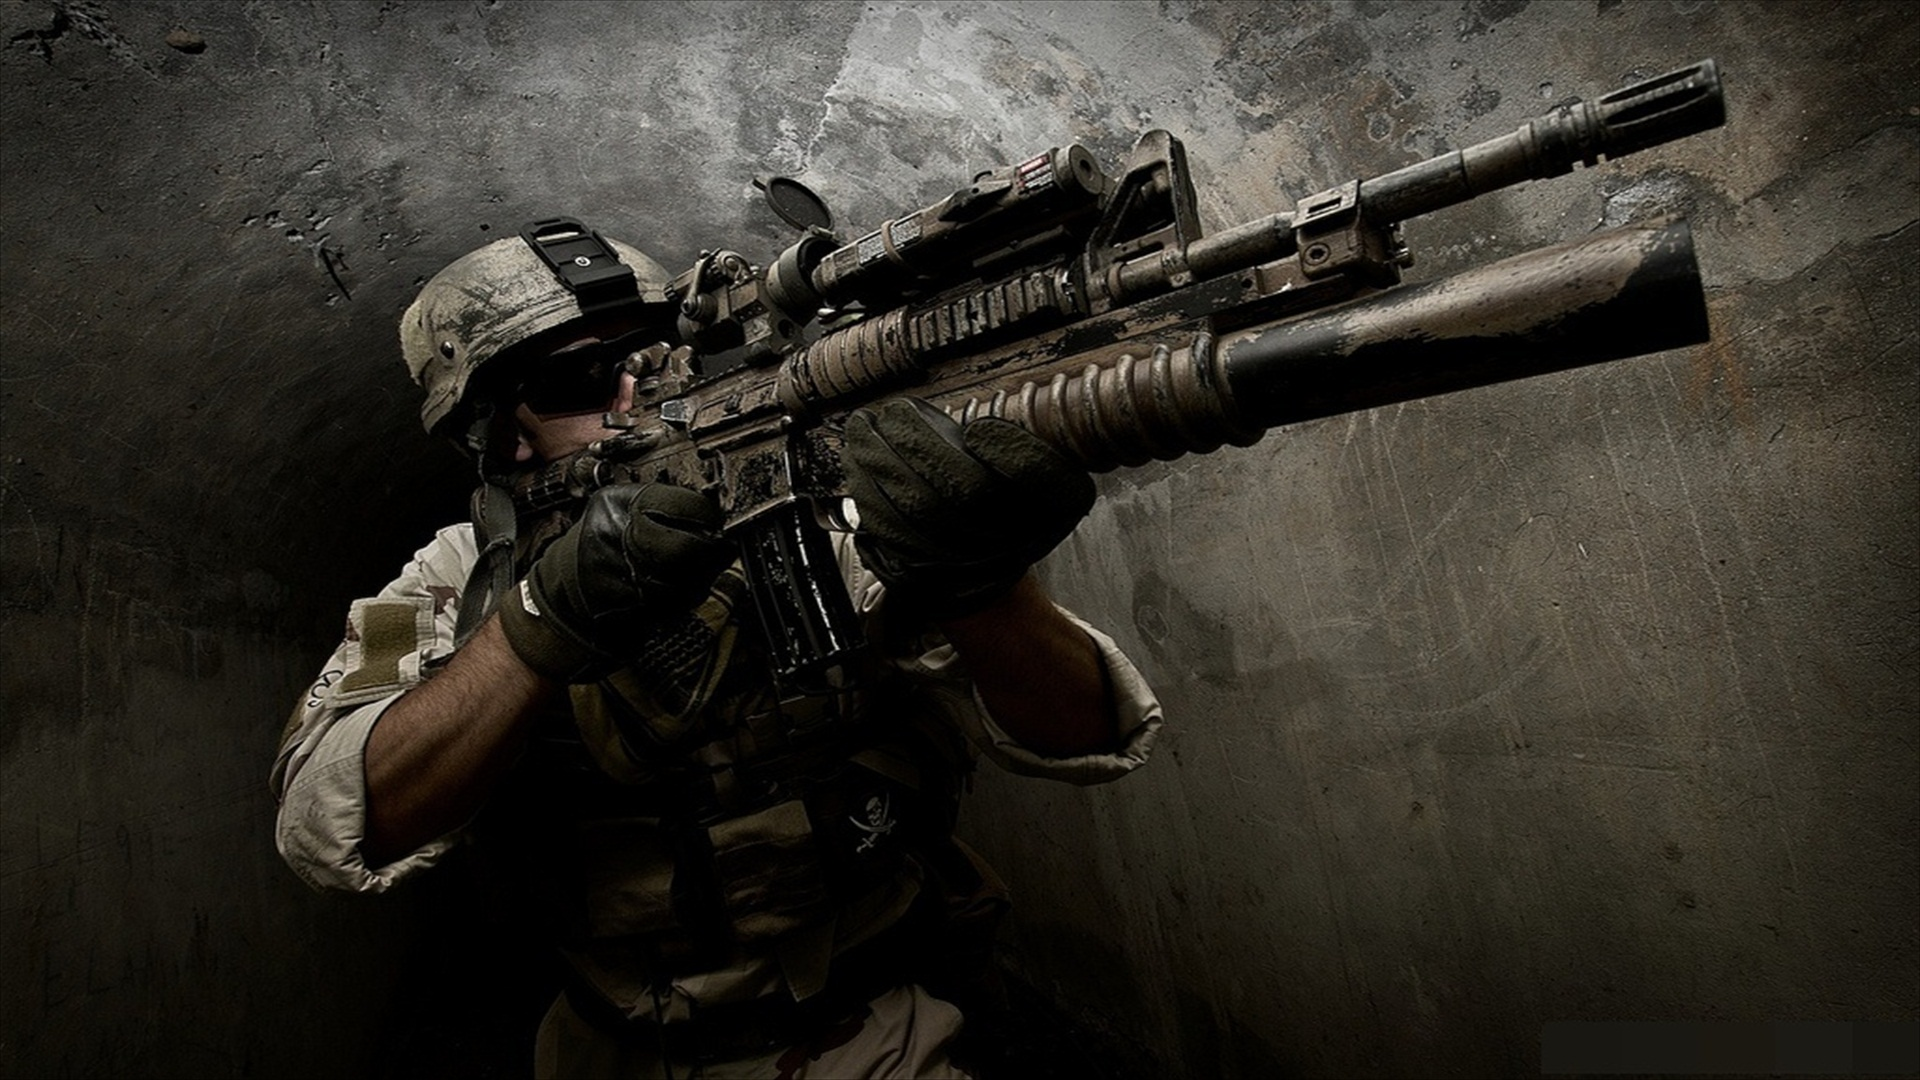 Assault Rifle Full HD Wallpaper and Background 1920x1080 1920x1080